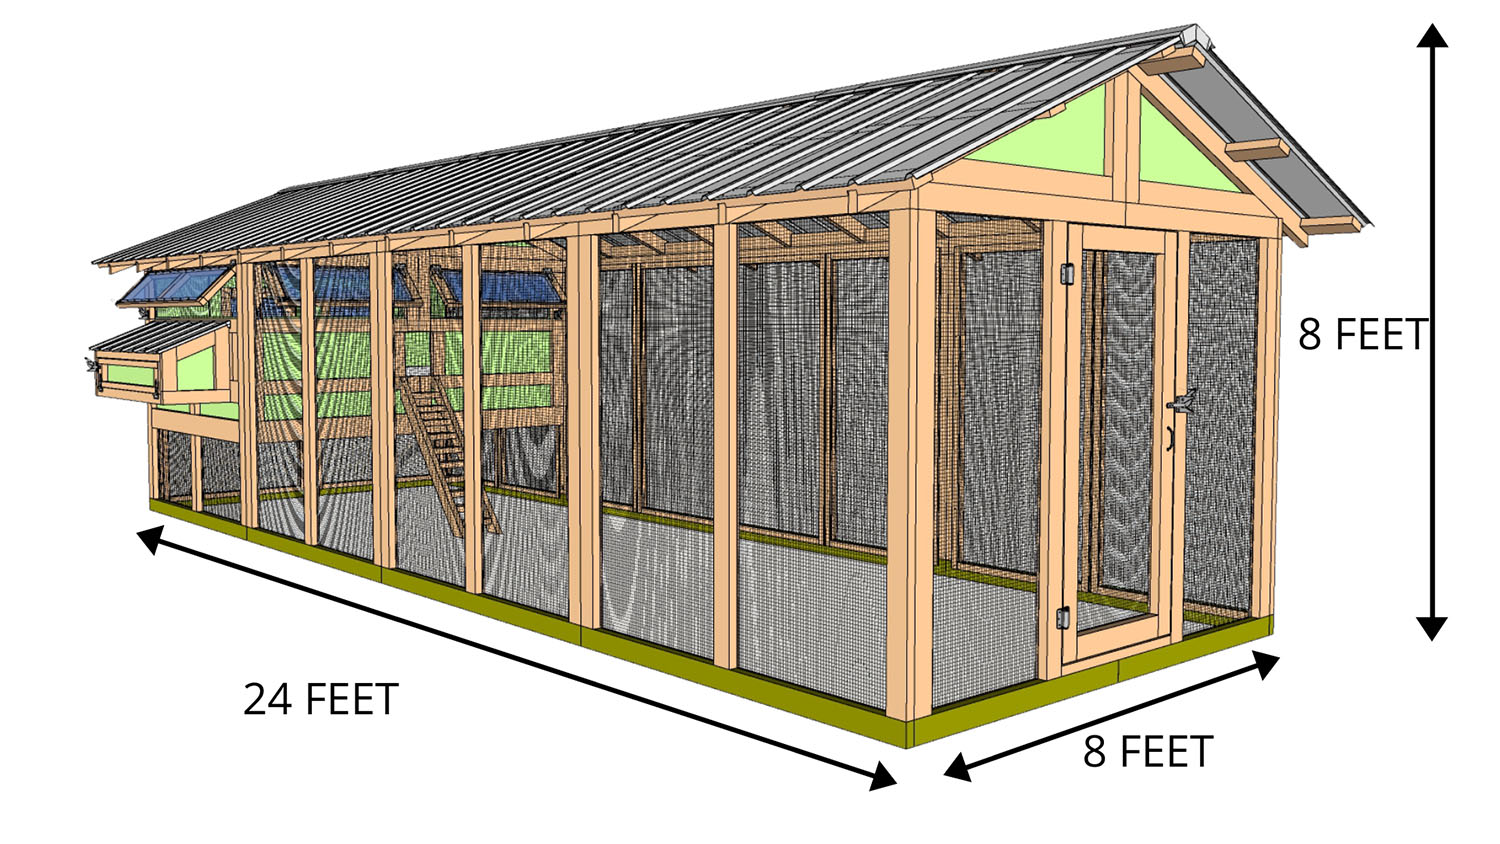 8'x24' American Coop with 6'x8' henhouse - STARTS AT $8,200